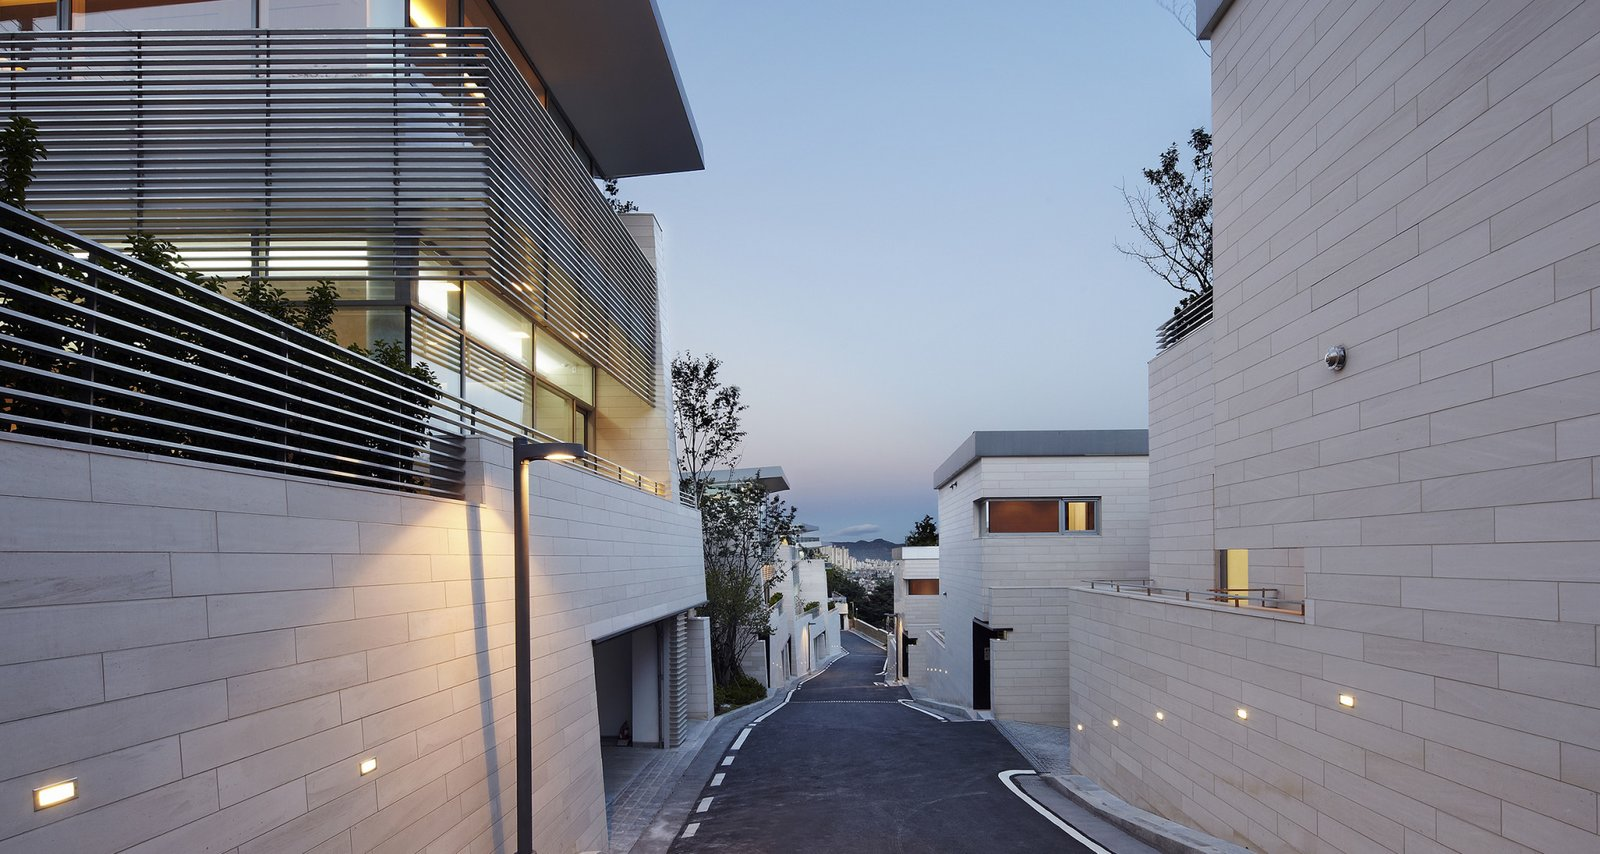 #SeongbukdongResidence #modern #midcentury #enclave #sustainable #L-shaped #exterior #outside #outdoors #structure #street #lighting #geometry #garage #driveway #Seoul #JoelSandersArchitects  Seongbukdong Residence by Joel Sanders Architect